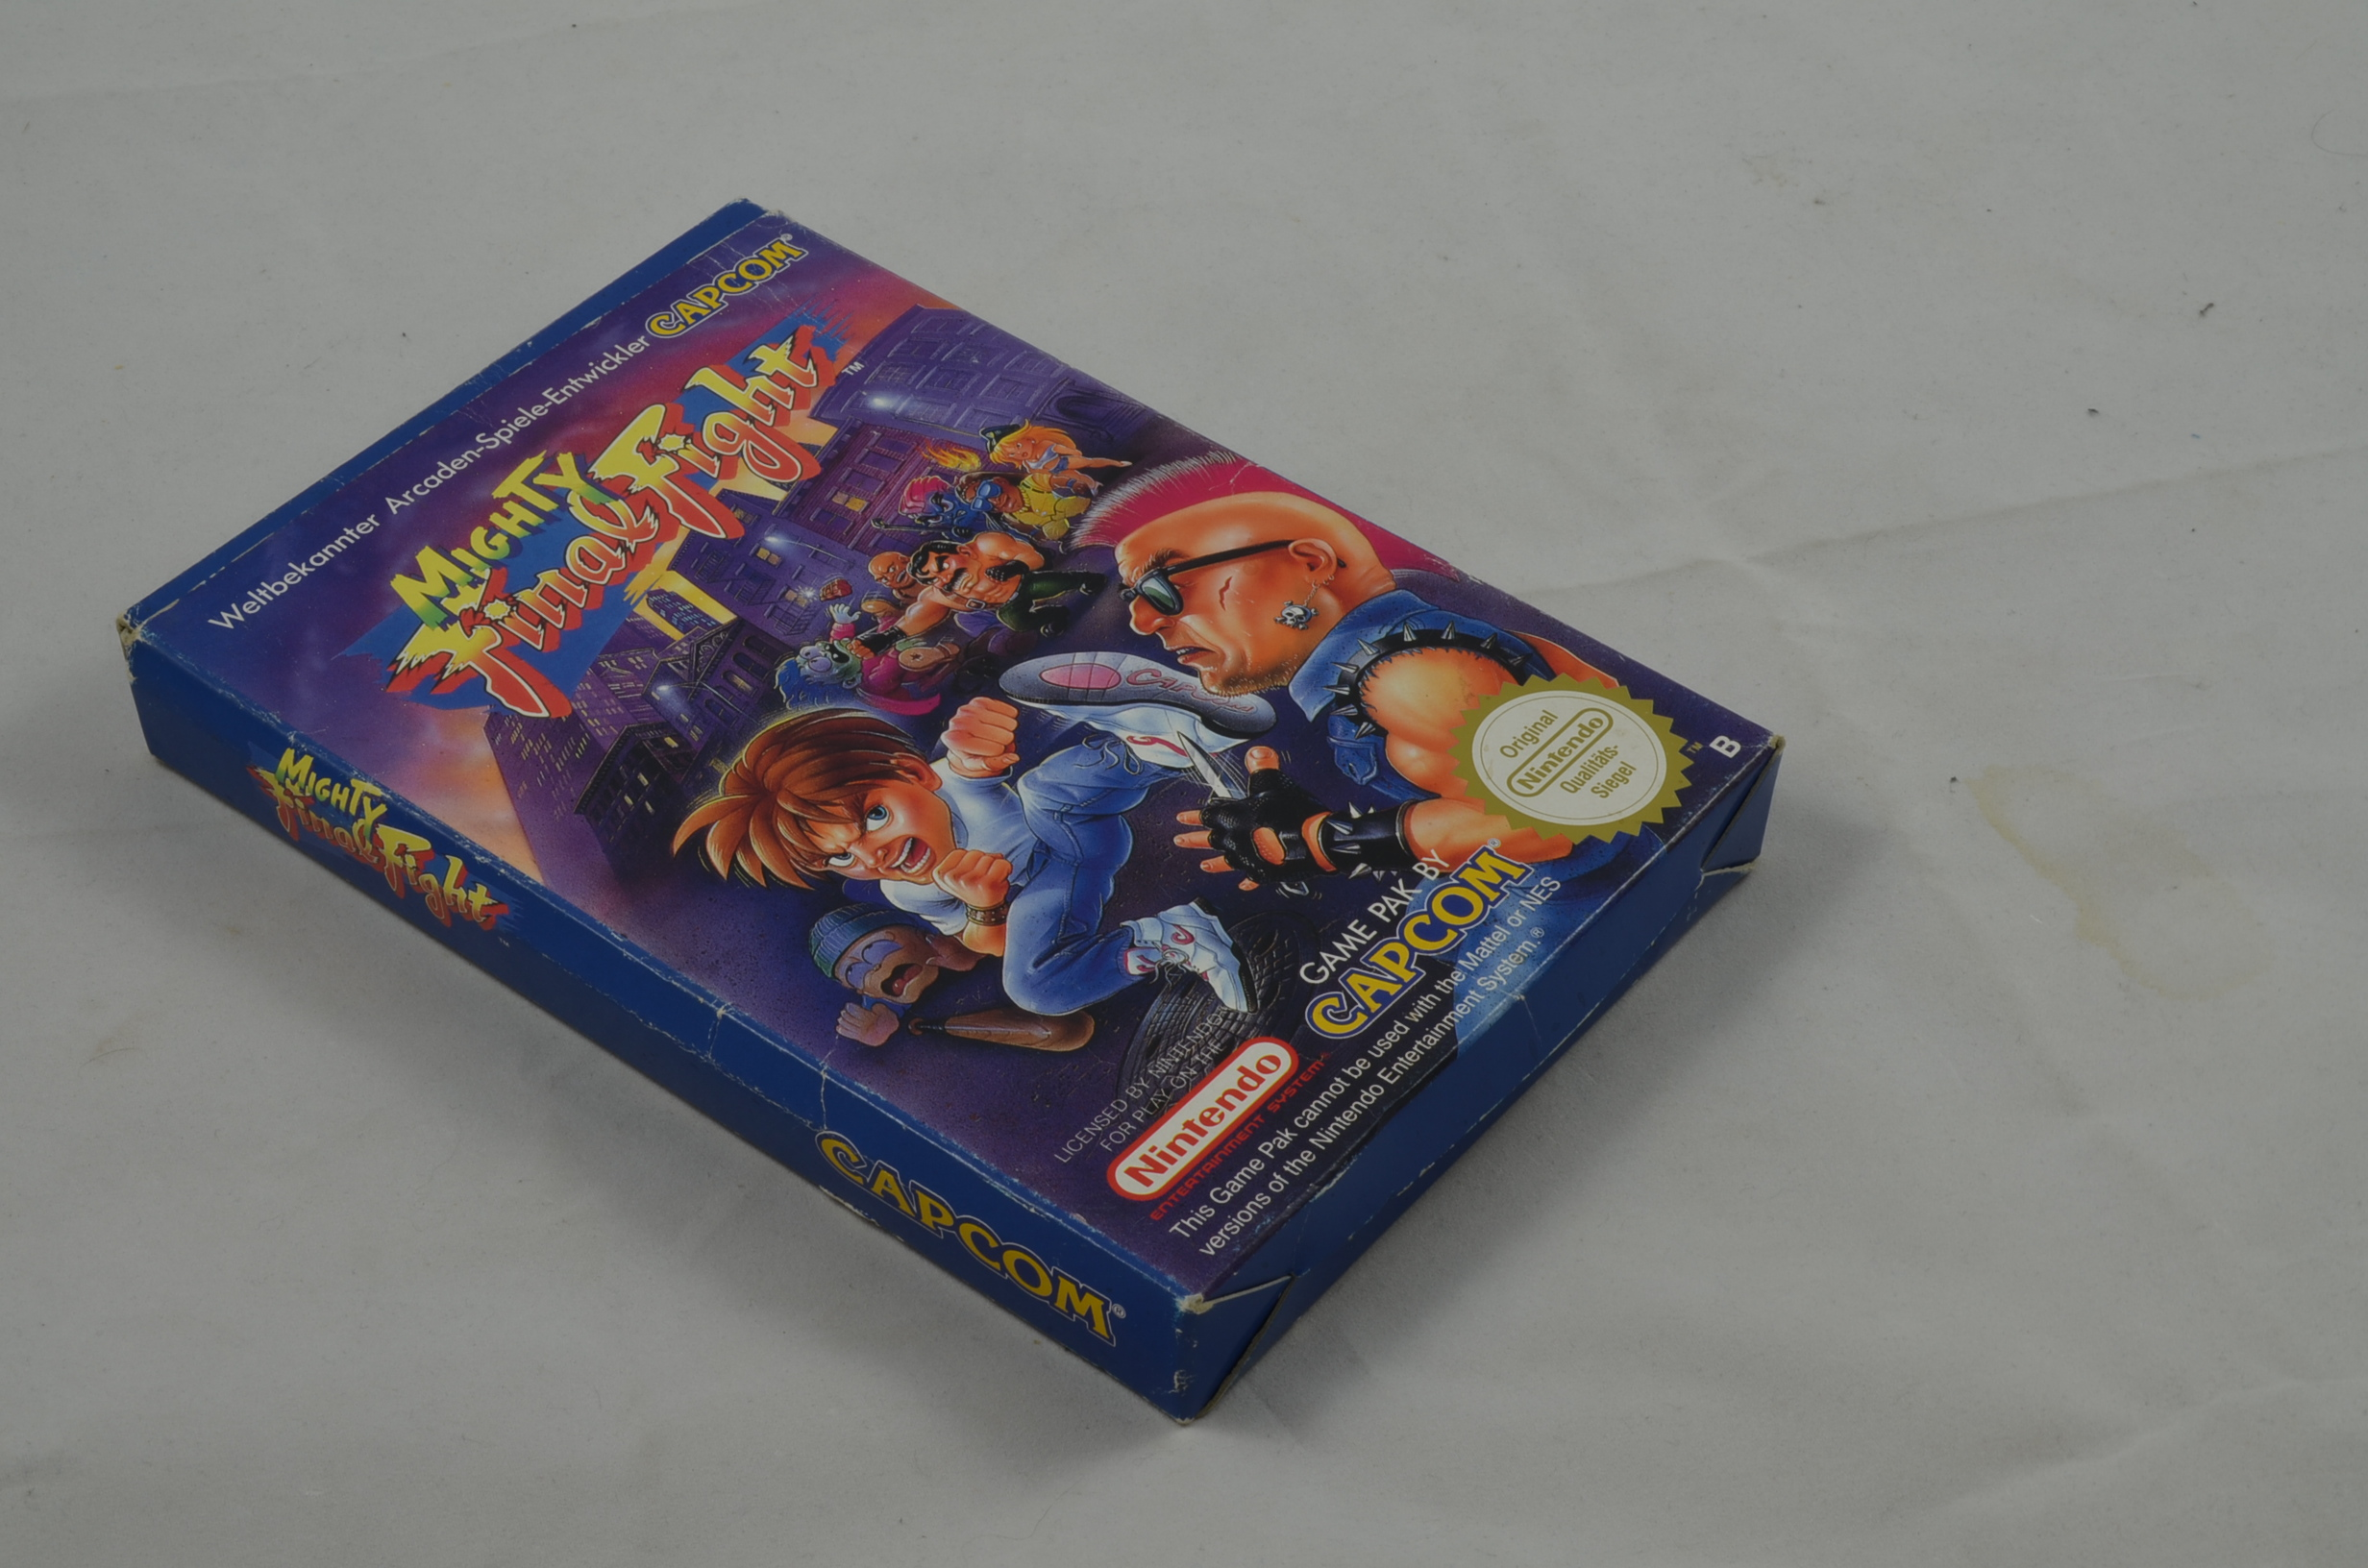 Produktbild von Mighty Final Fight NES Spiel CIB (gut)